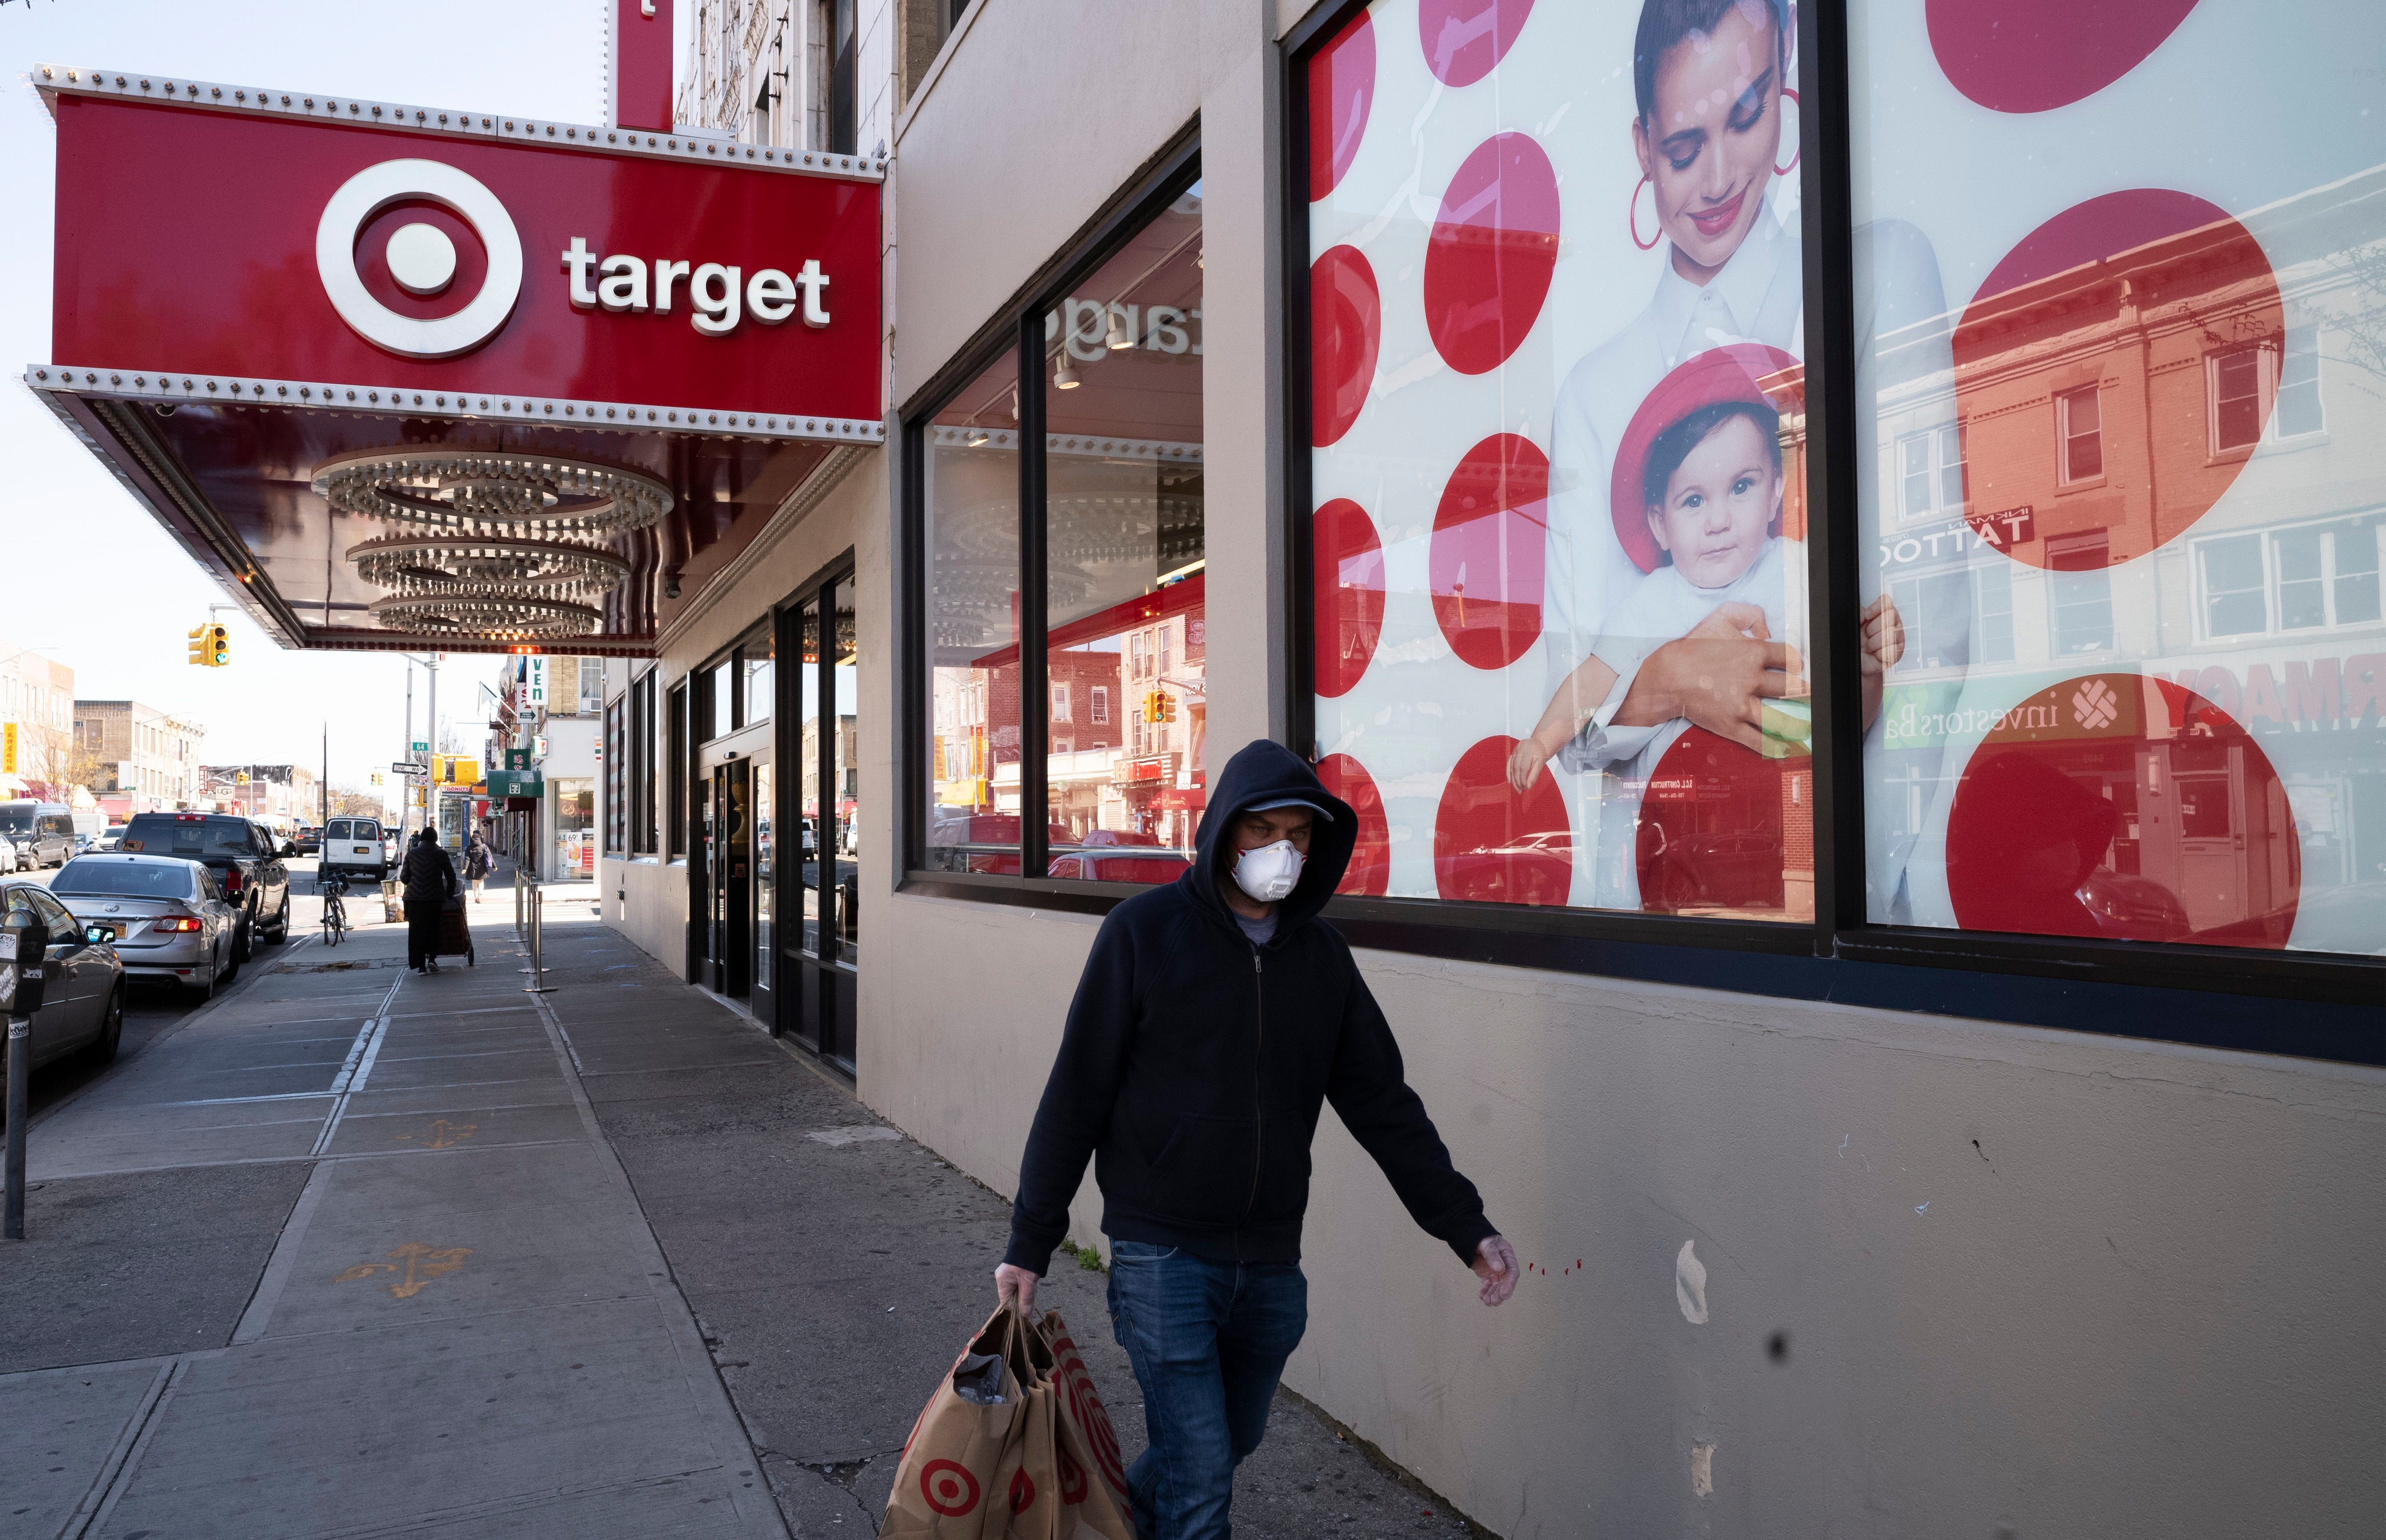 Target keeps sales momentum going during pandemic